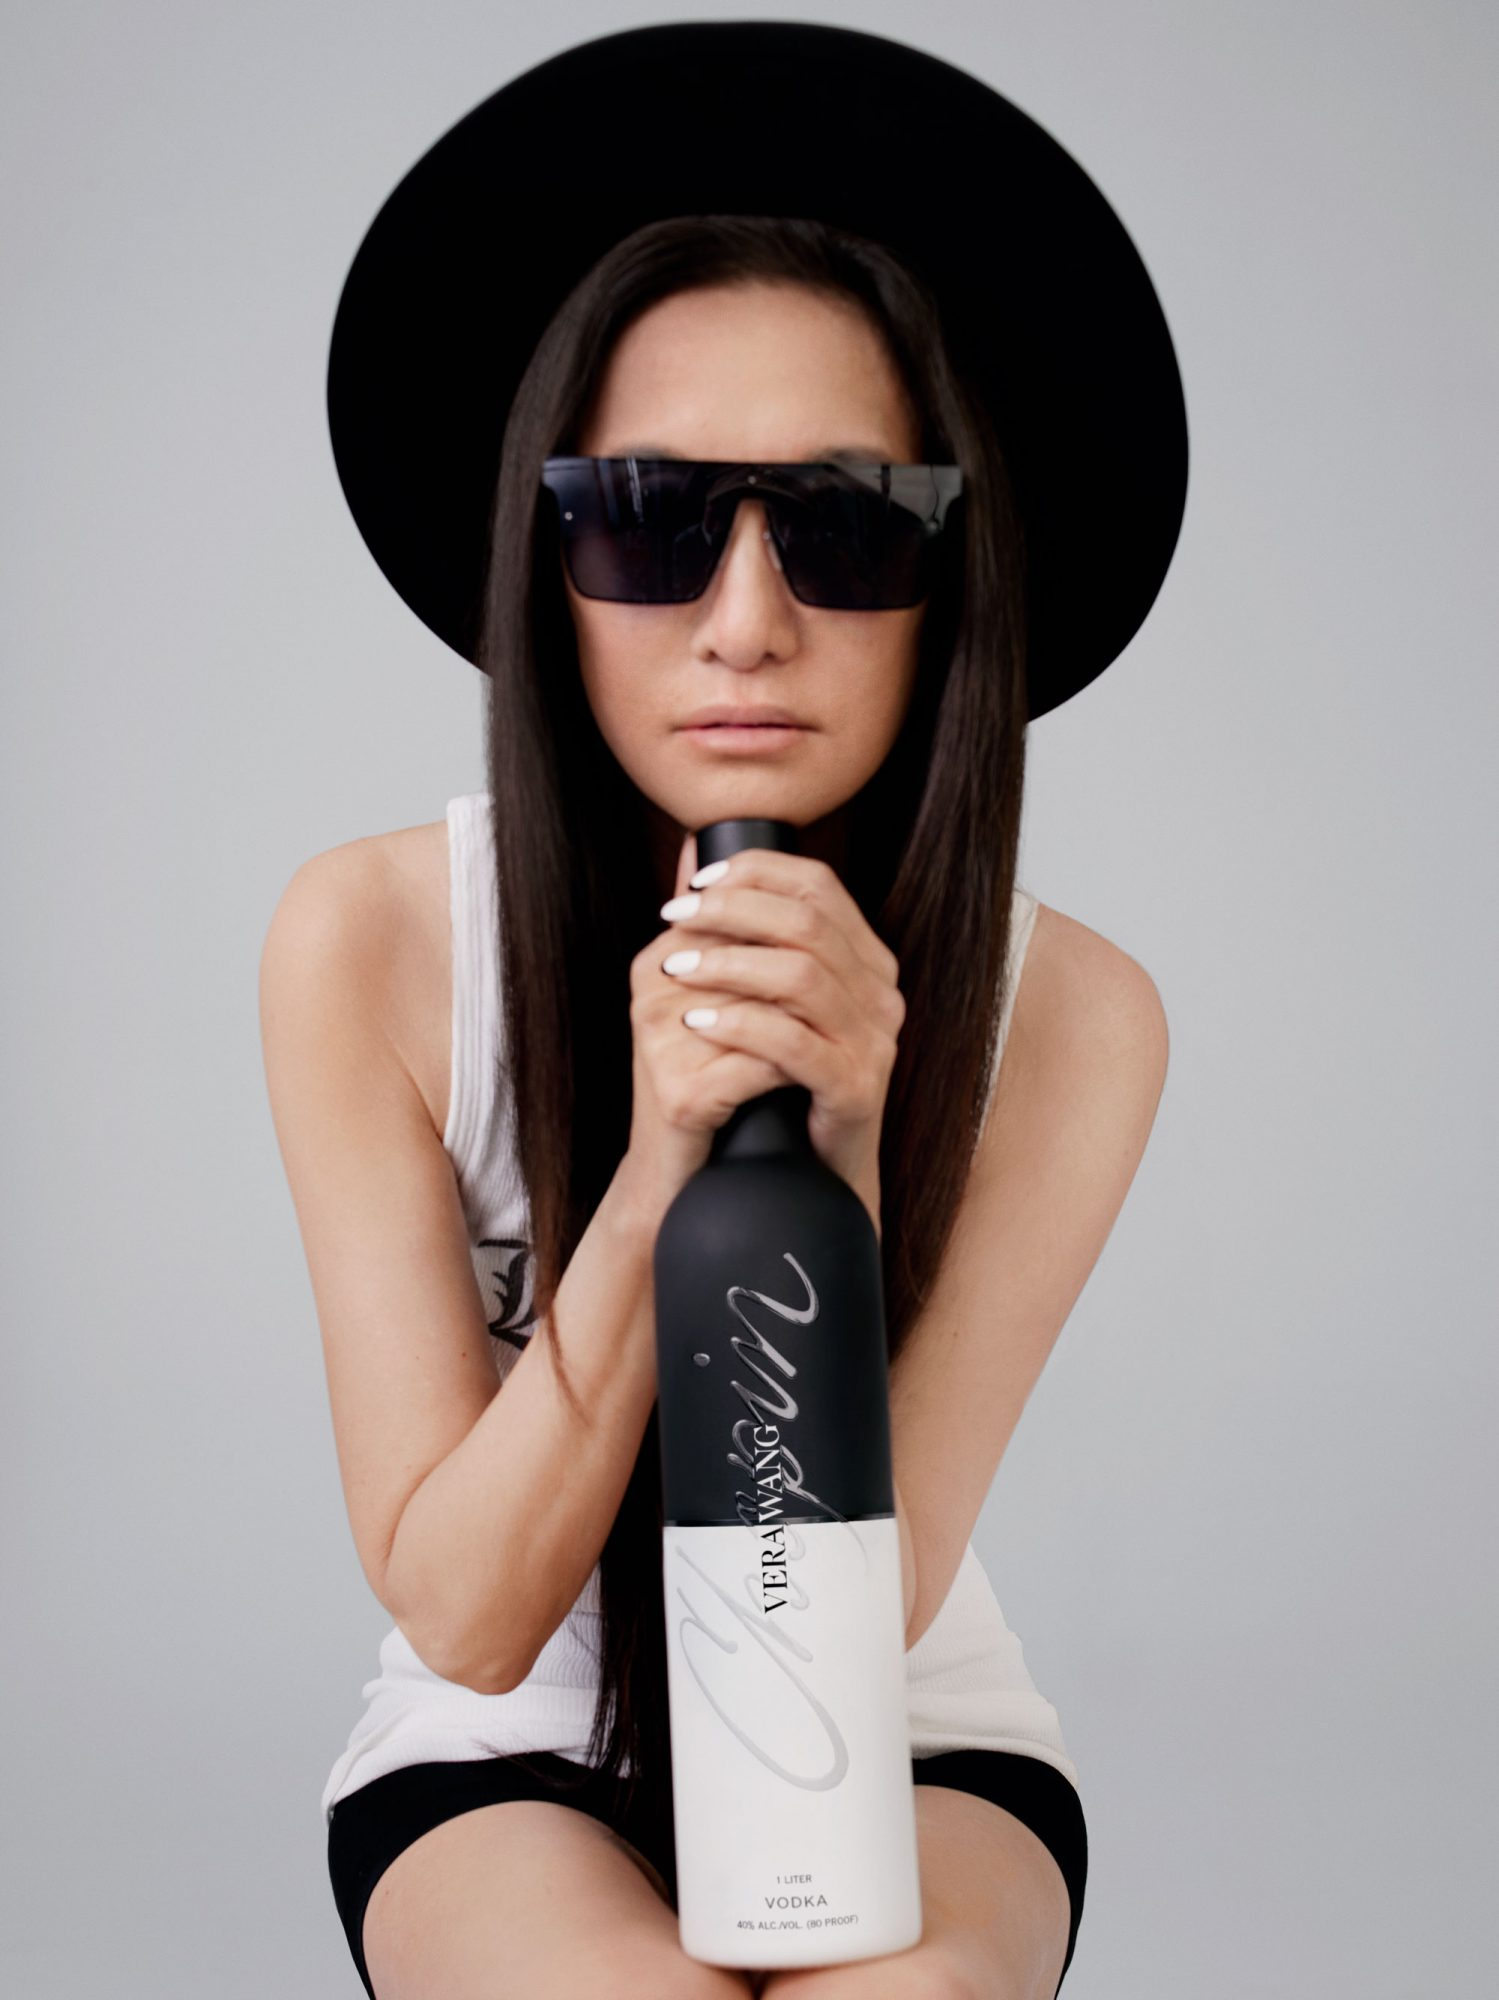 Vera Wang and Chopin Vodka Make U.S History With   New Collab photo